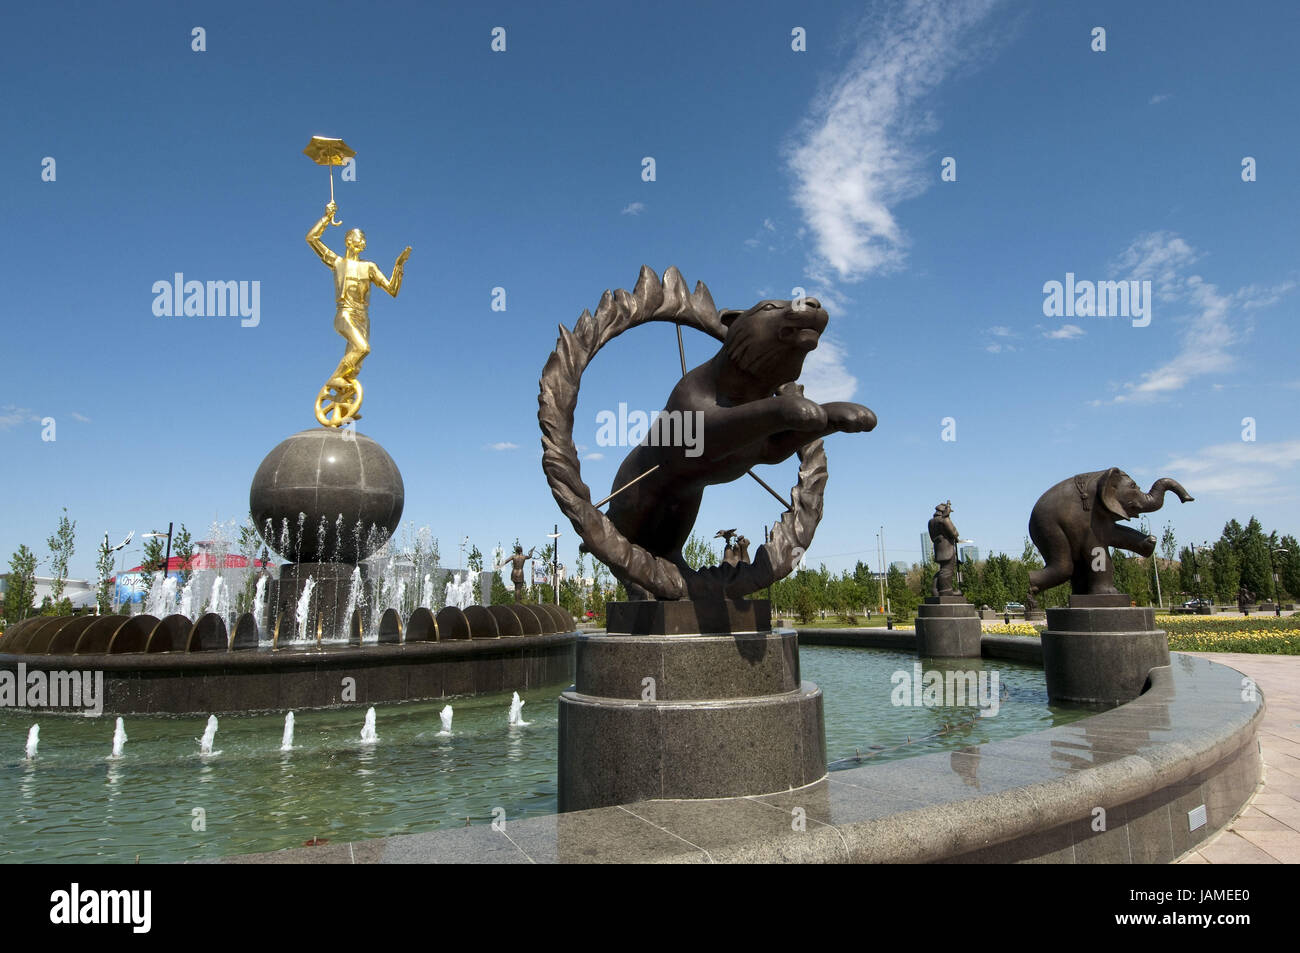 Kazakhstan,well before the circus in Astana with artistes and animals, - Stock Image